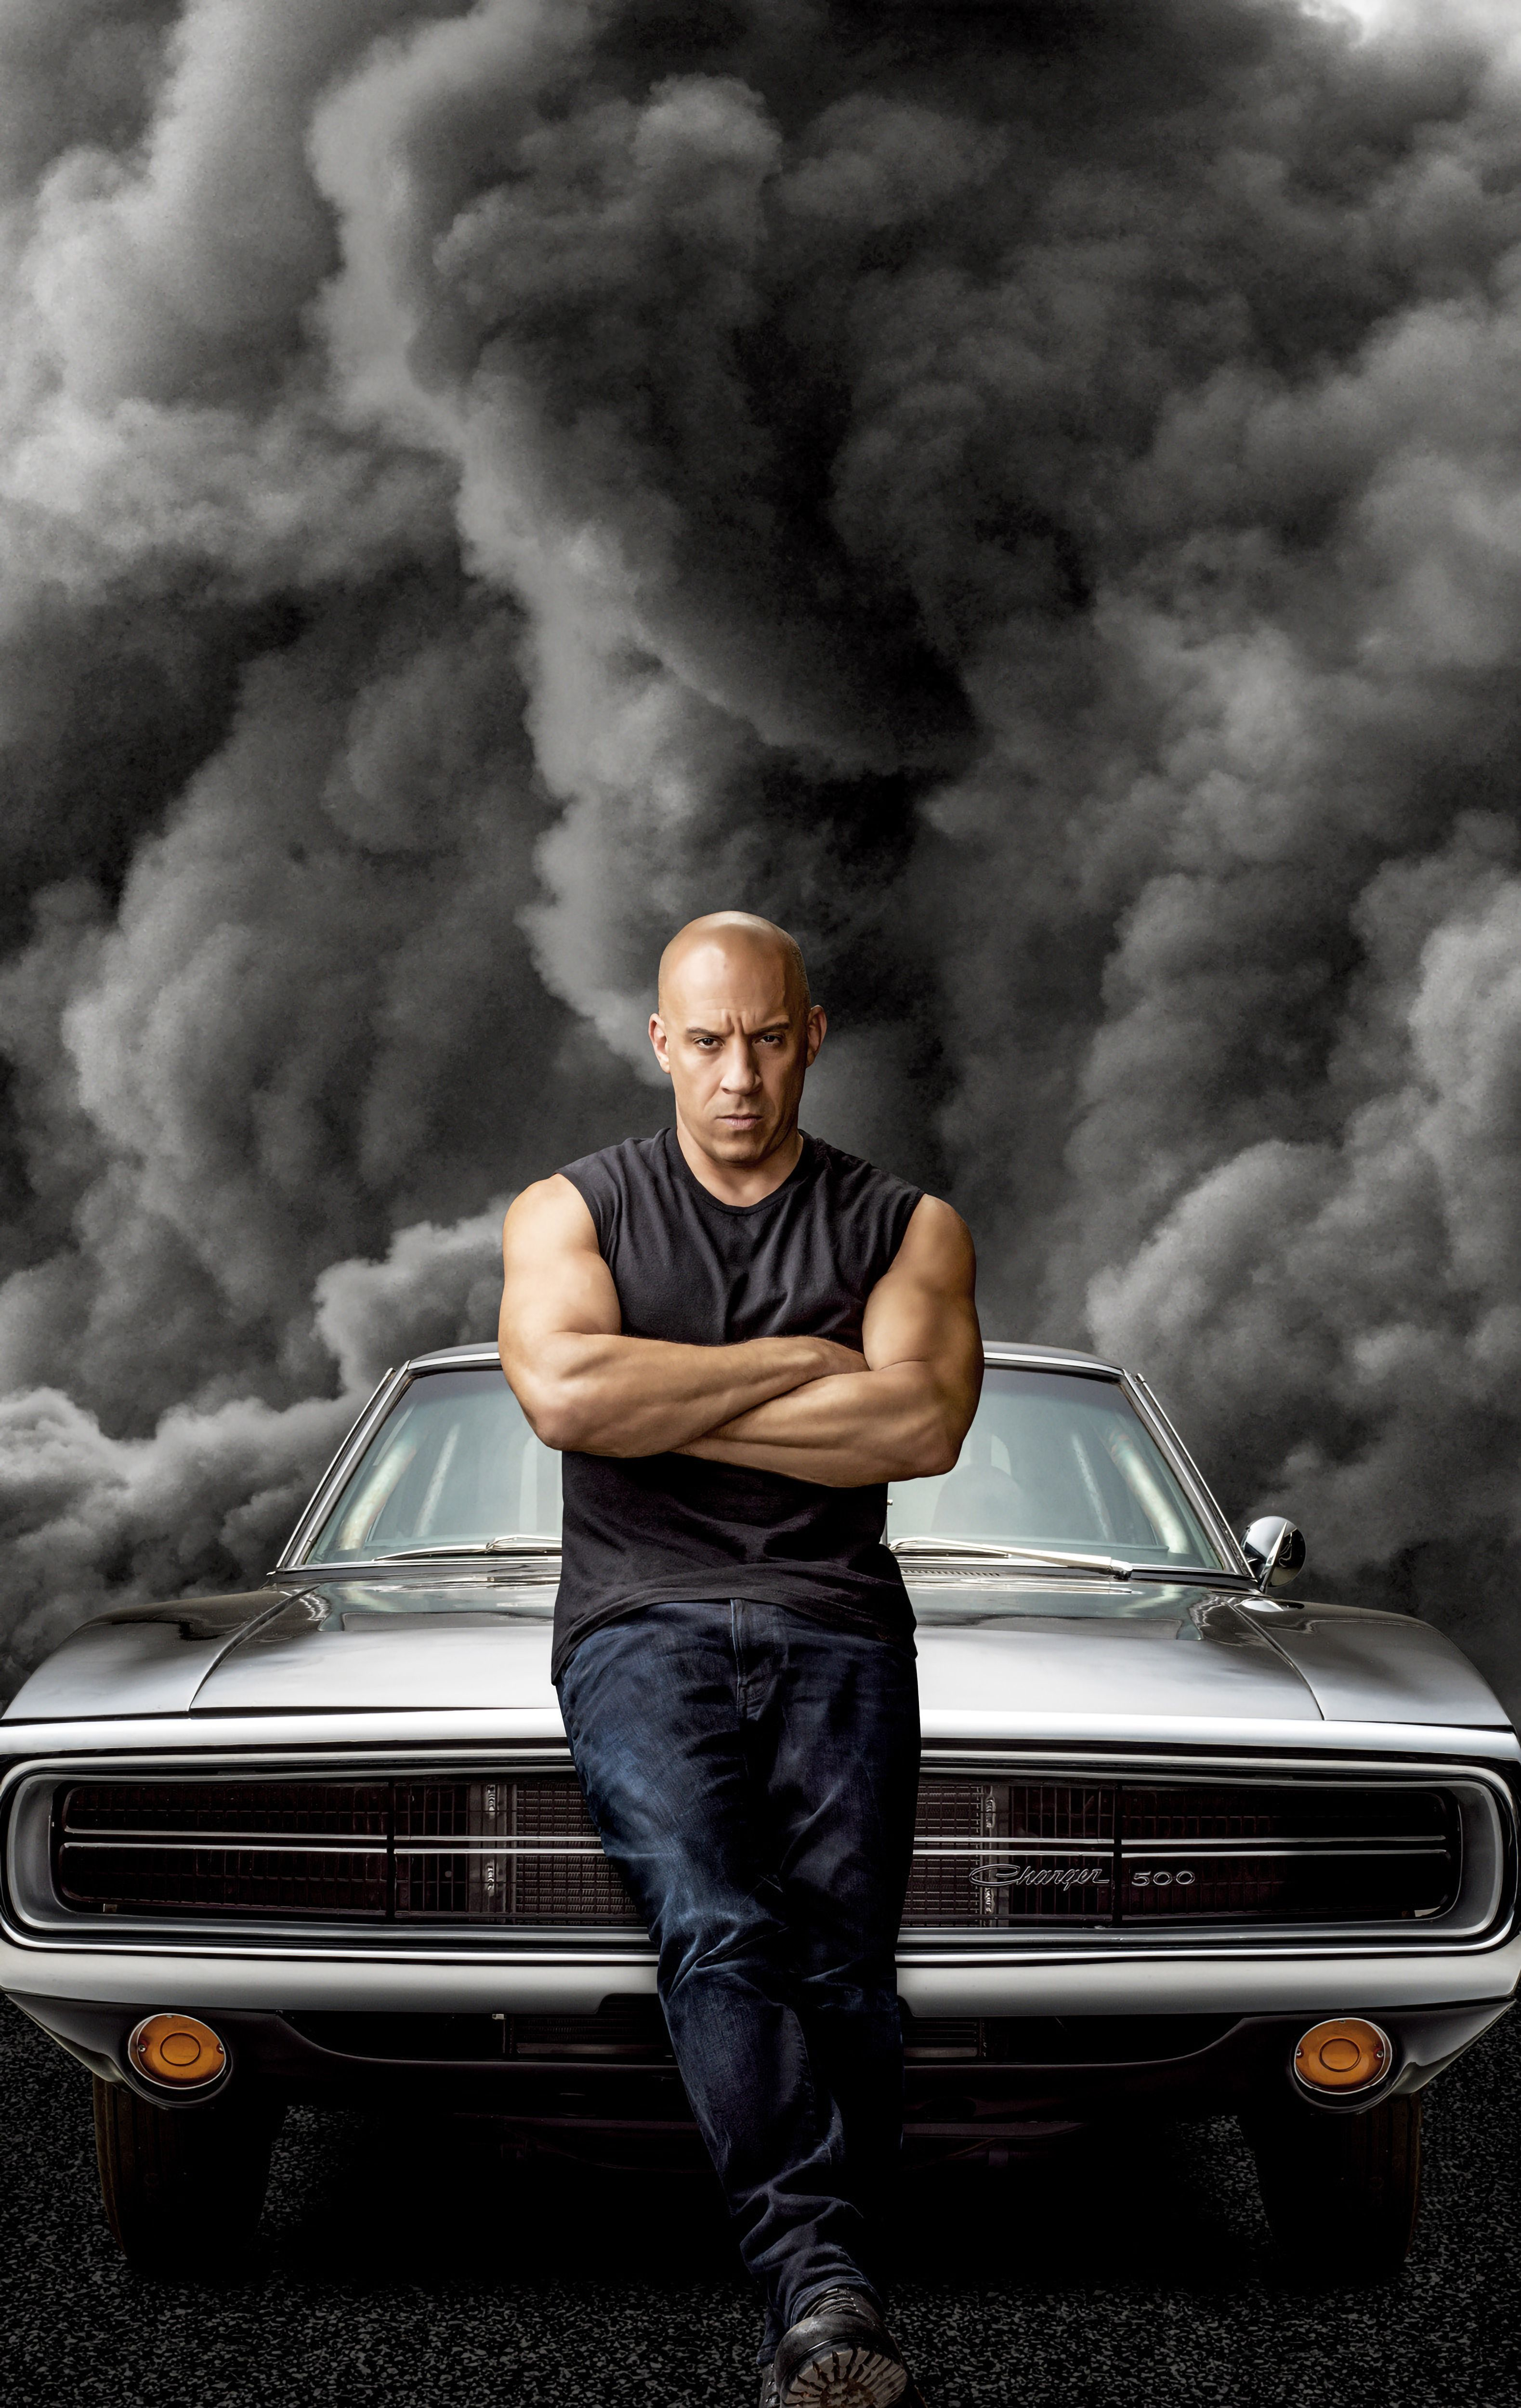 Fast Furious 9 Wallpapers Top Free Fast Furious 9